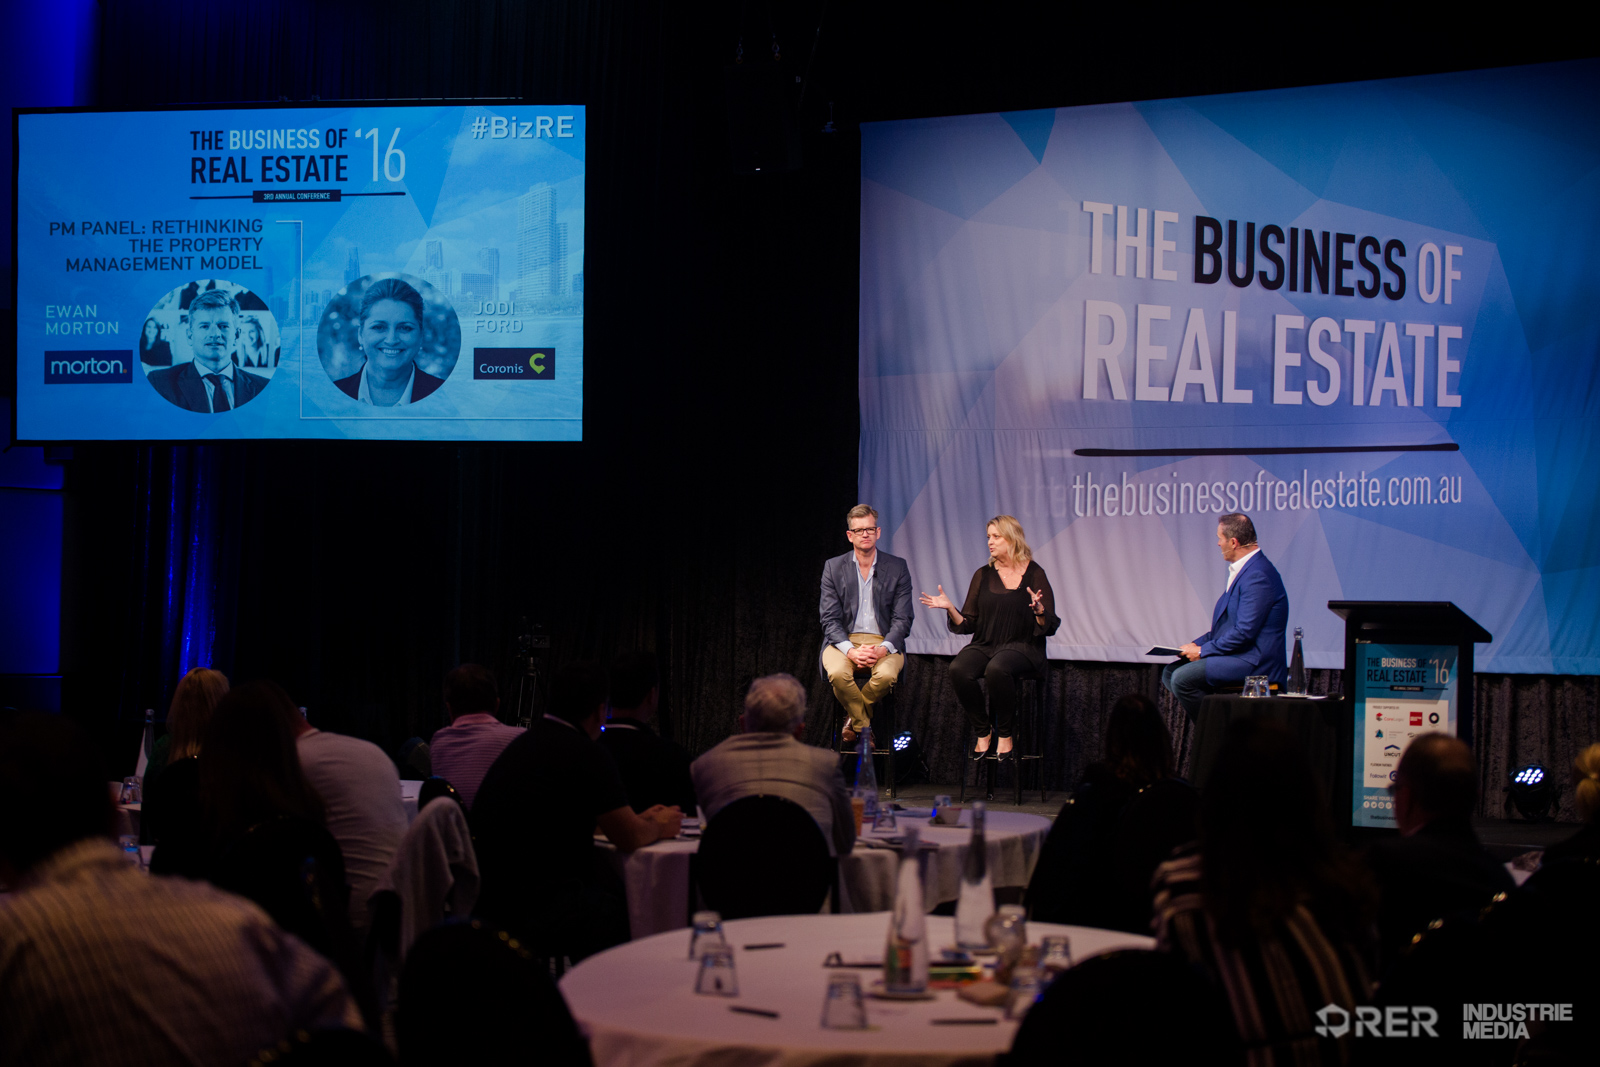 https://www.thebusinessofrealestate.com.au/wp-content/uploads/2016/09/RER_BUSINESS_OF_REAL_ESTATE_DAY_2-82.jpg